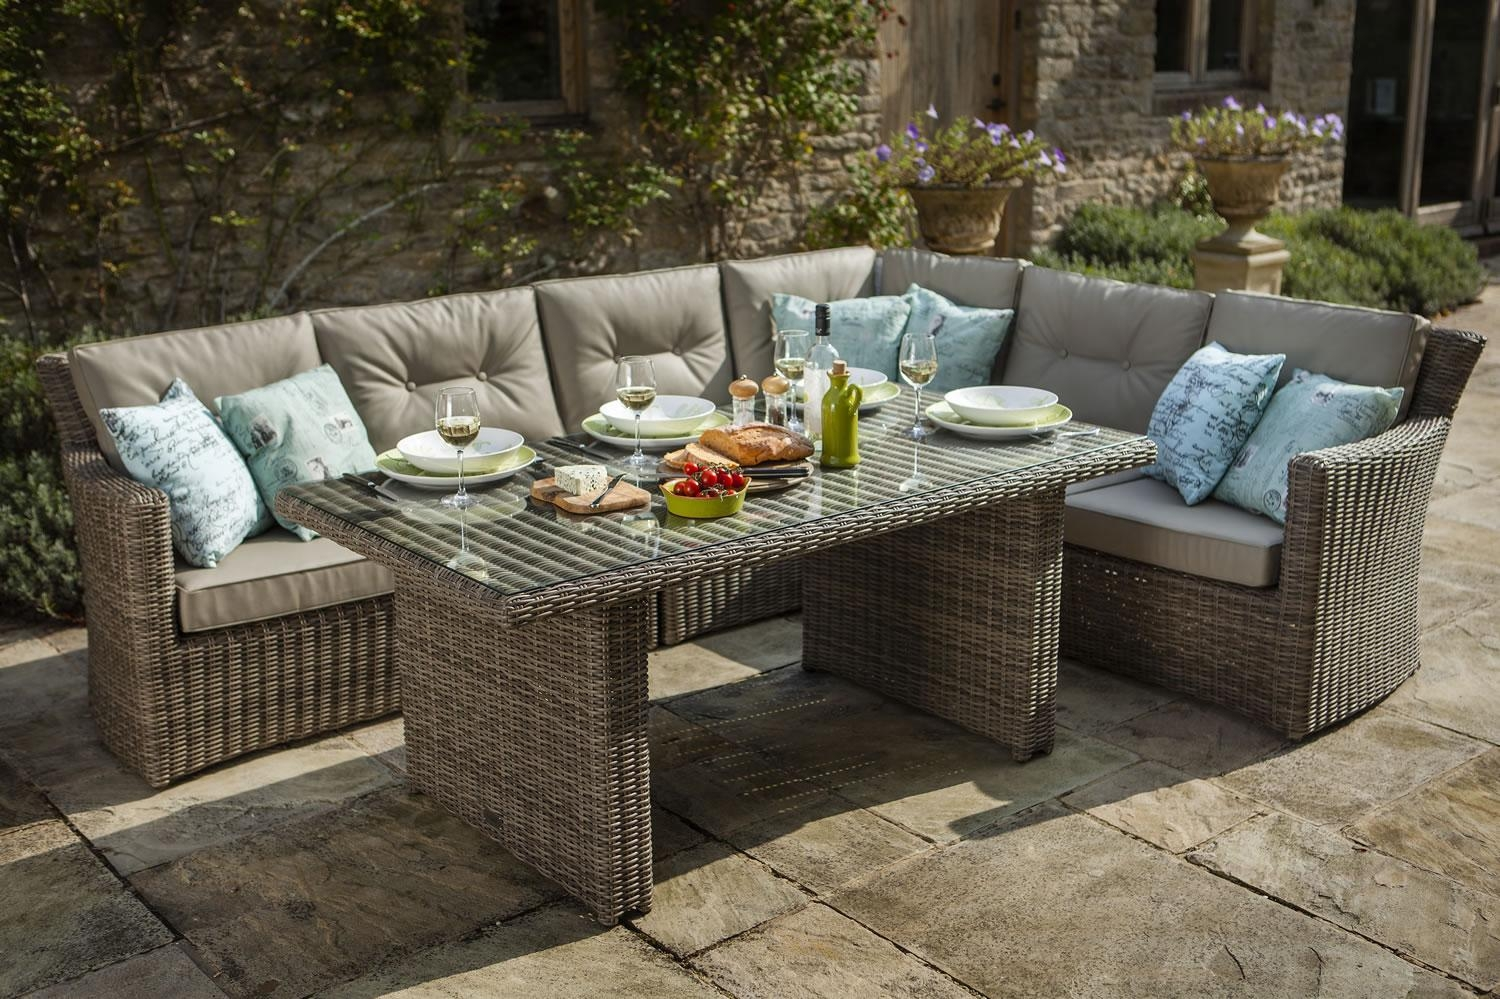 Sofa Dining Set With Inspiration Image 44745 | Kengire Throughout Ken Sofa Sets (Image 18 of 20)